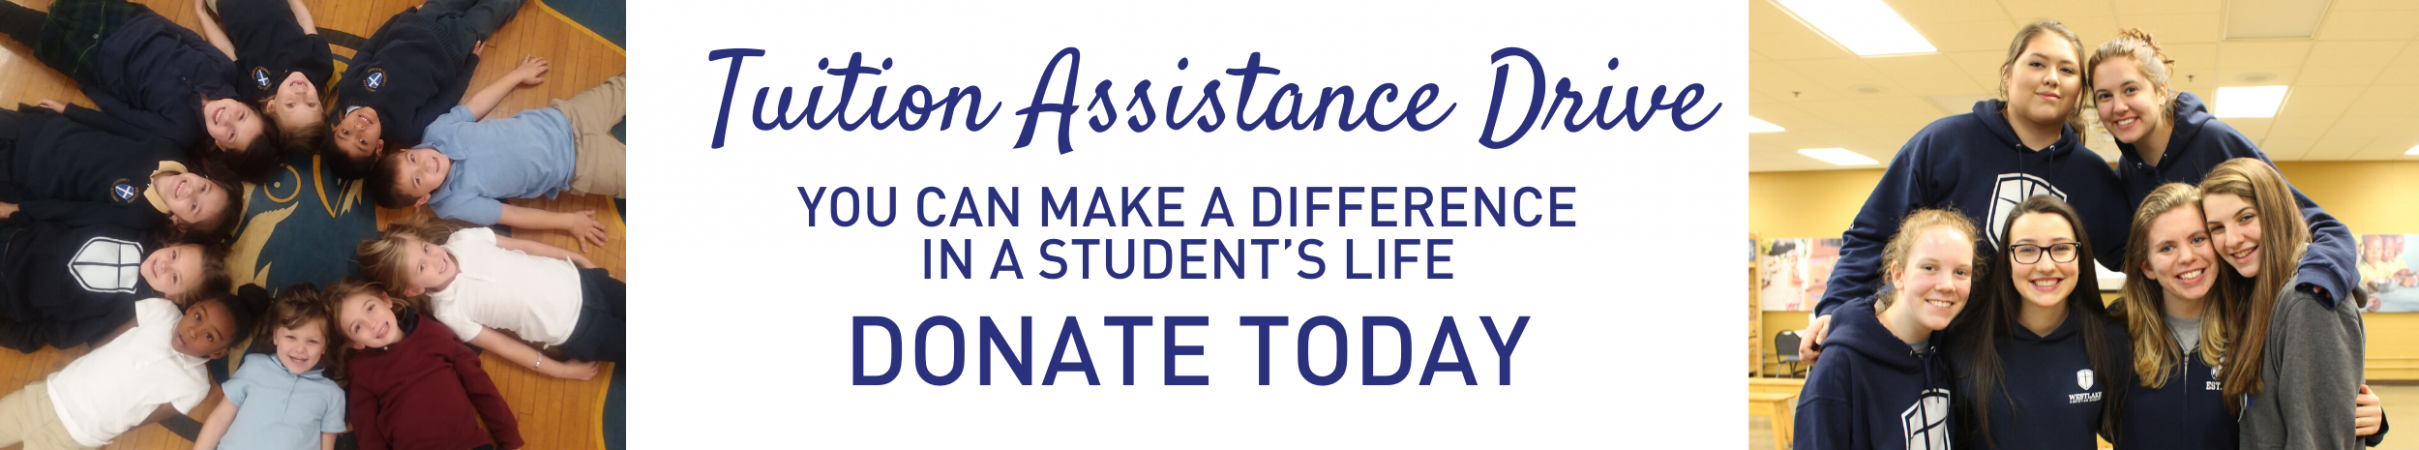 Make a difference in a student's life - Donate to WCA's Tuition Assistance Drive